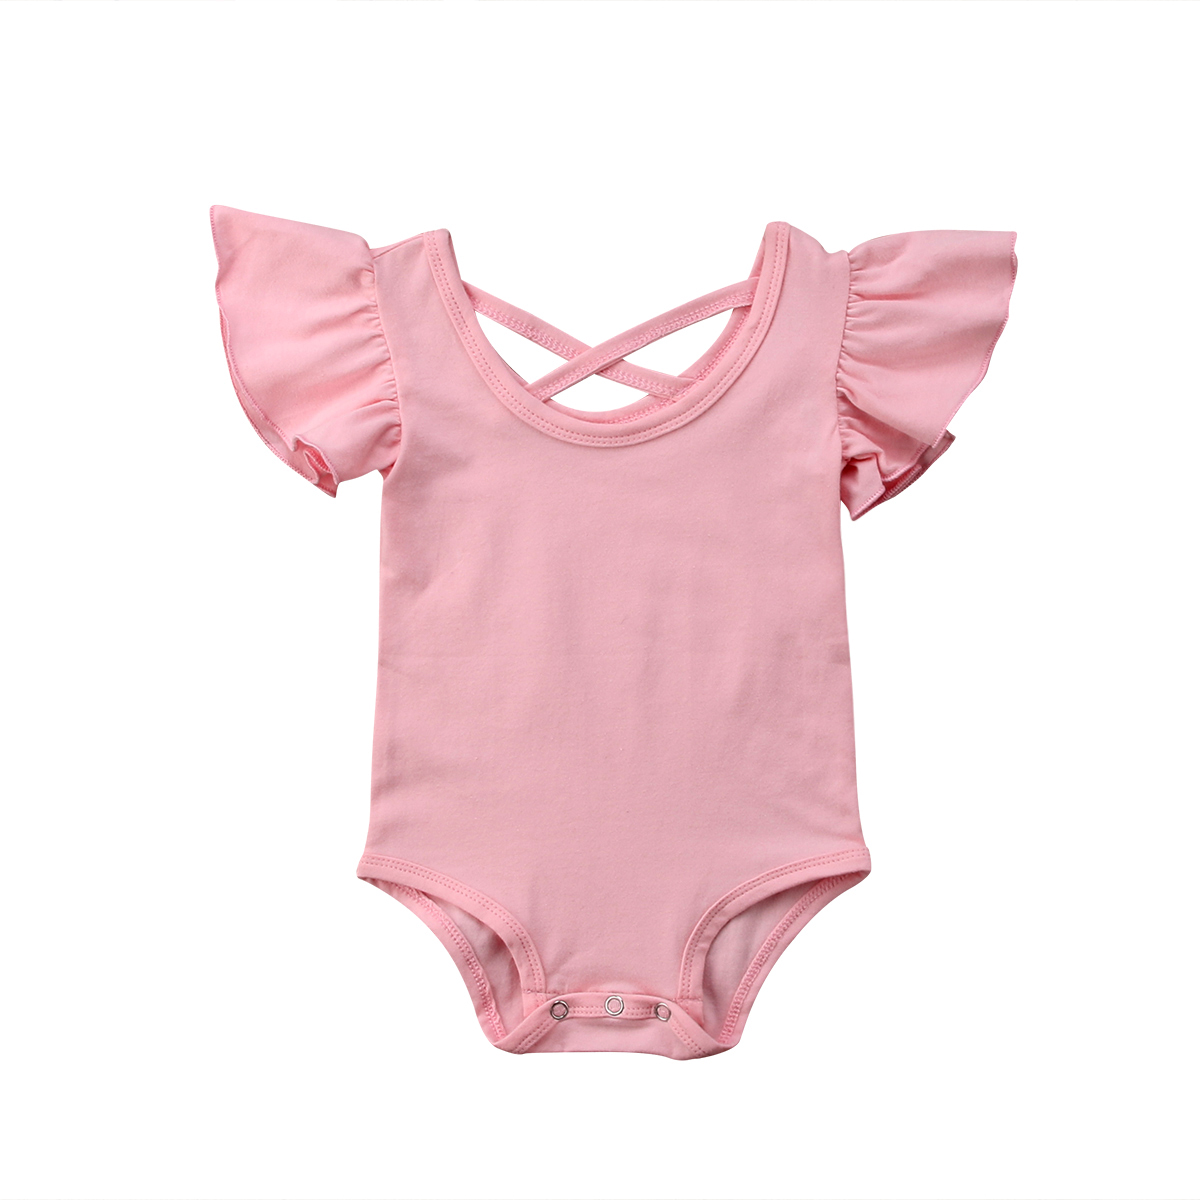 Pudcoco New Toddler Infant Baby Girls Cotton Solid Color Cotton   Romper   Princess Girls Jumpsuit Sunsuit Outfits Baby Girl Clothes